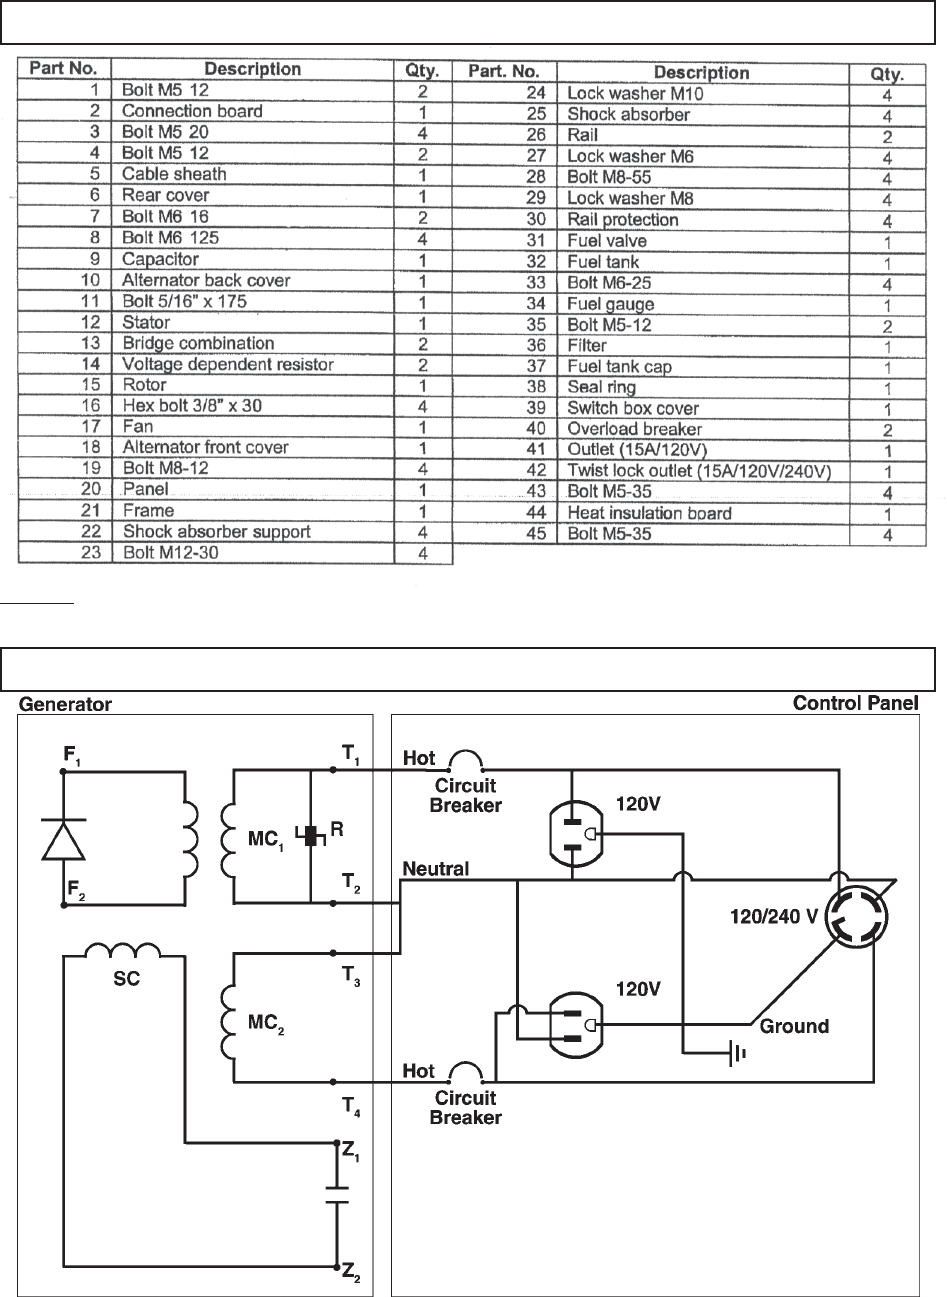 a85f0c07 842a 44f4 8489 a0177bc6f502 bg11 page 17 of chicago electric portable generator 90236 user guide champion generator wiring diagram at gsmportal.co